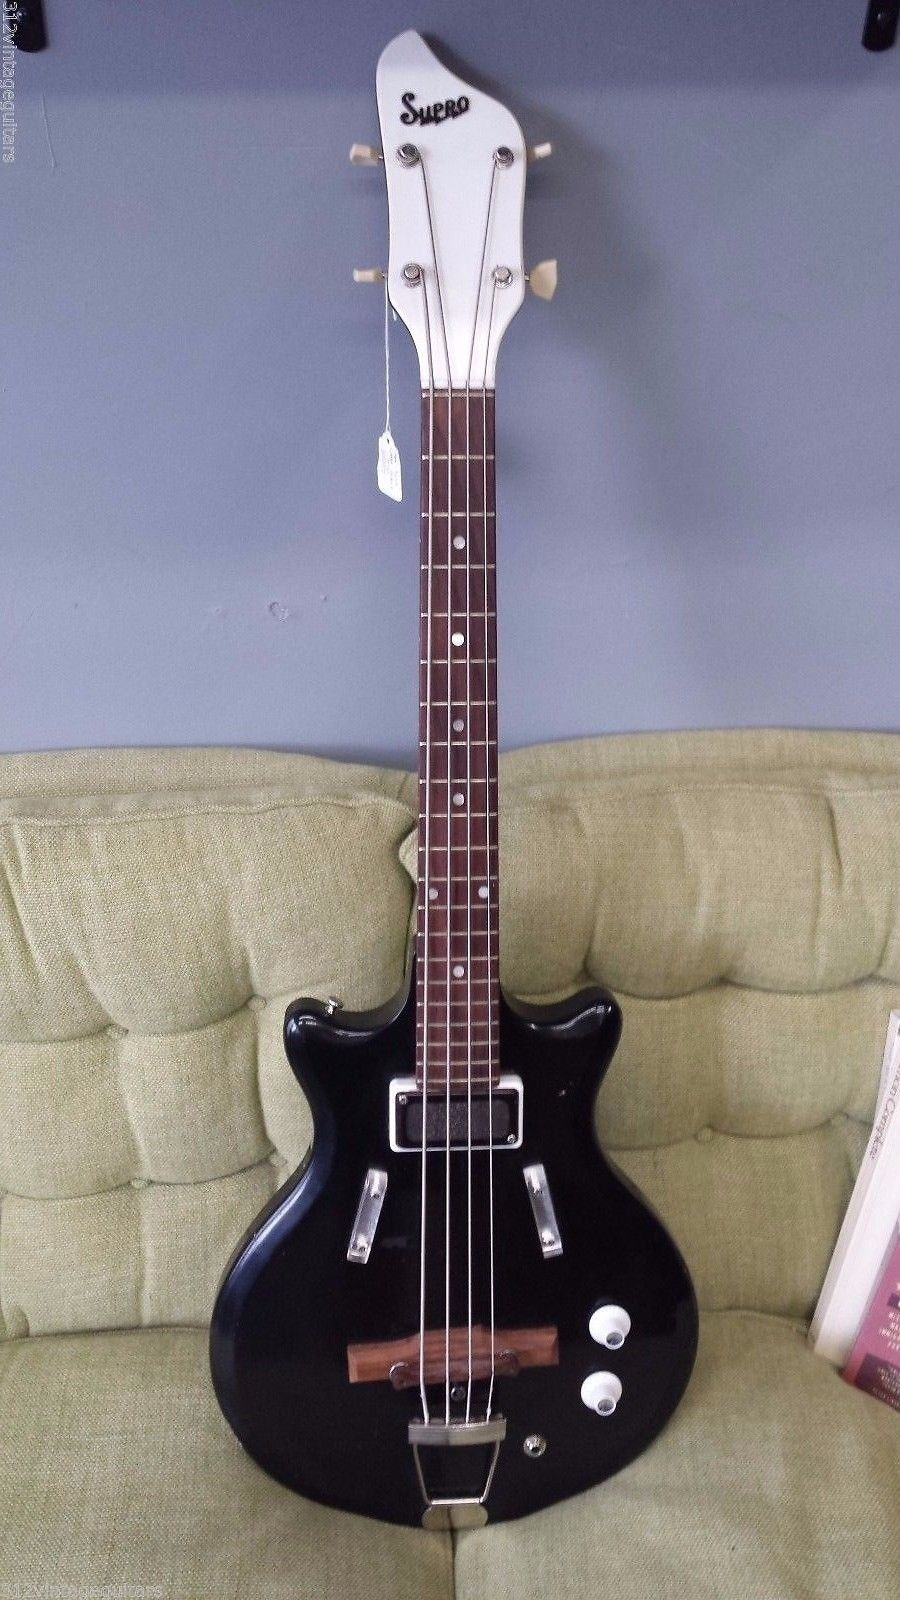 1966 Supro S488B Pocket Bass Electric Guitar - Vintage Valco Short Scale